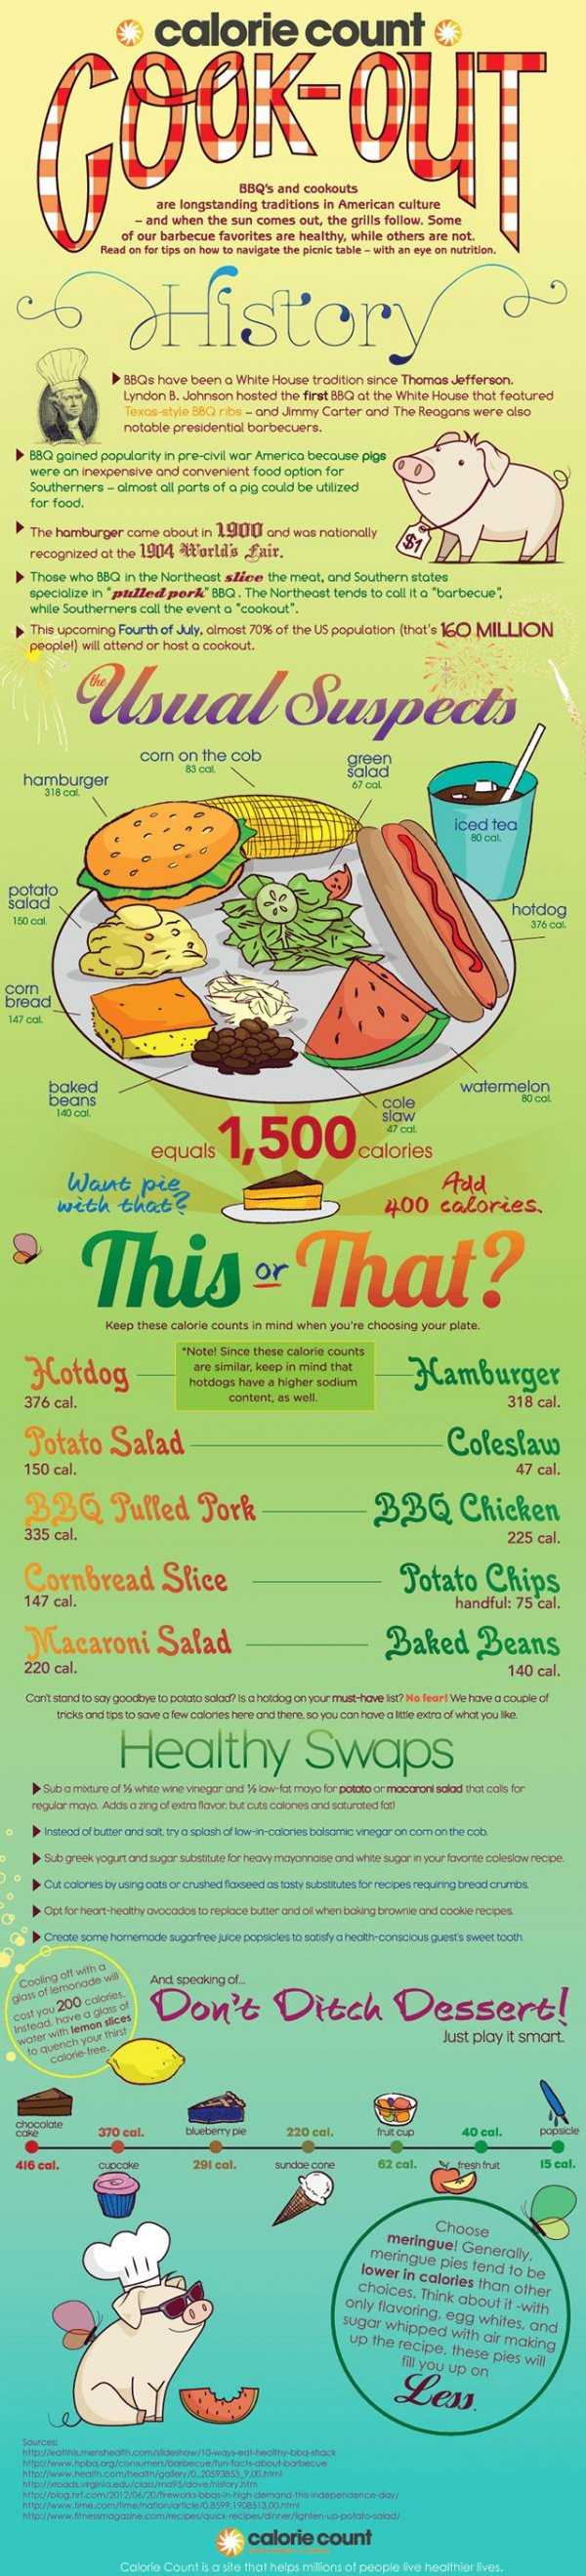 Healthy BBQ & Grilling Tips